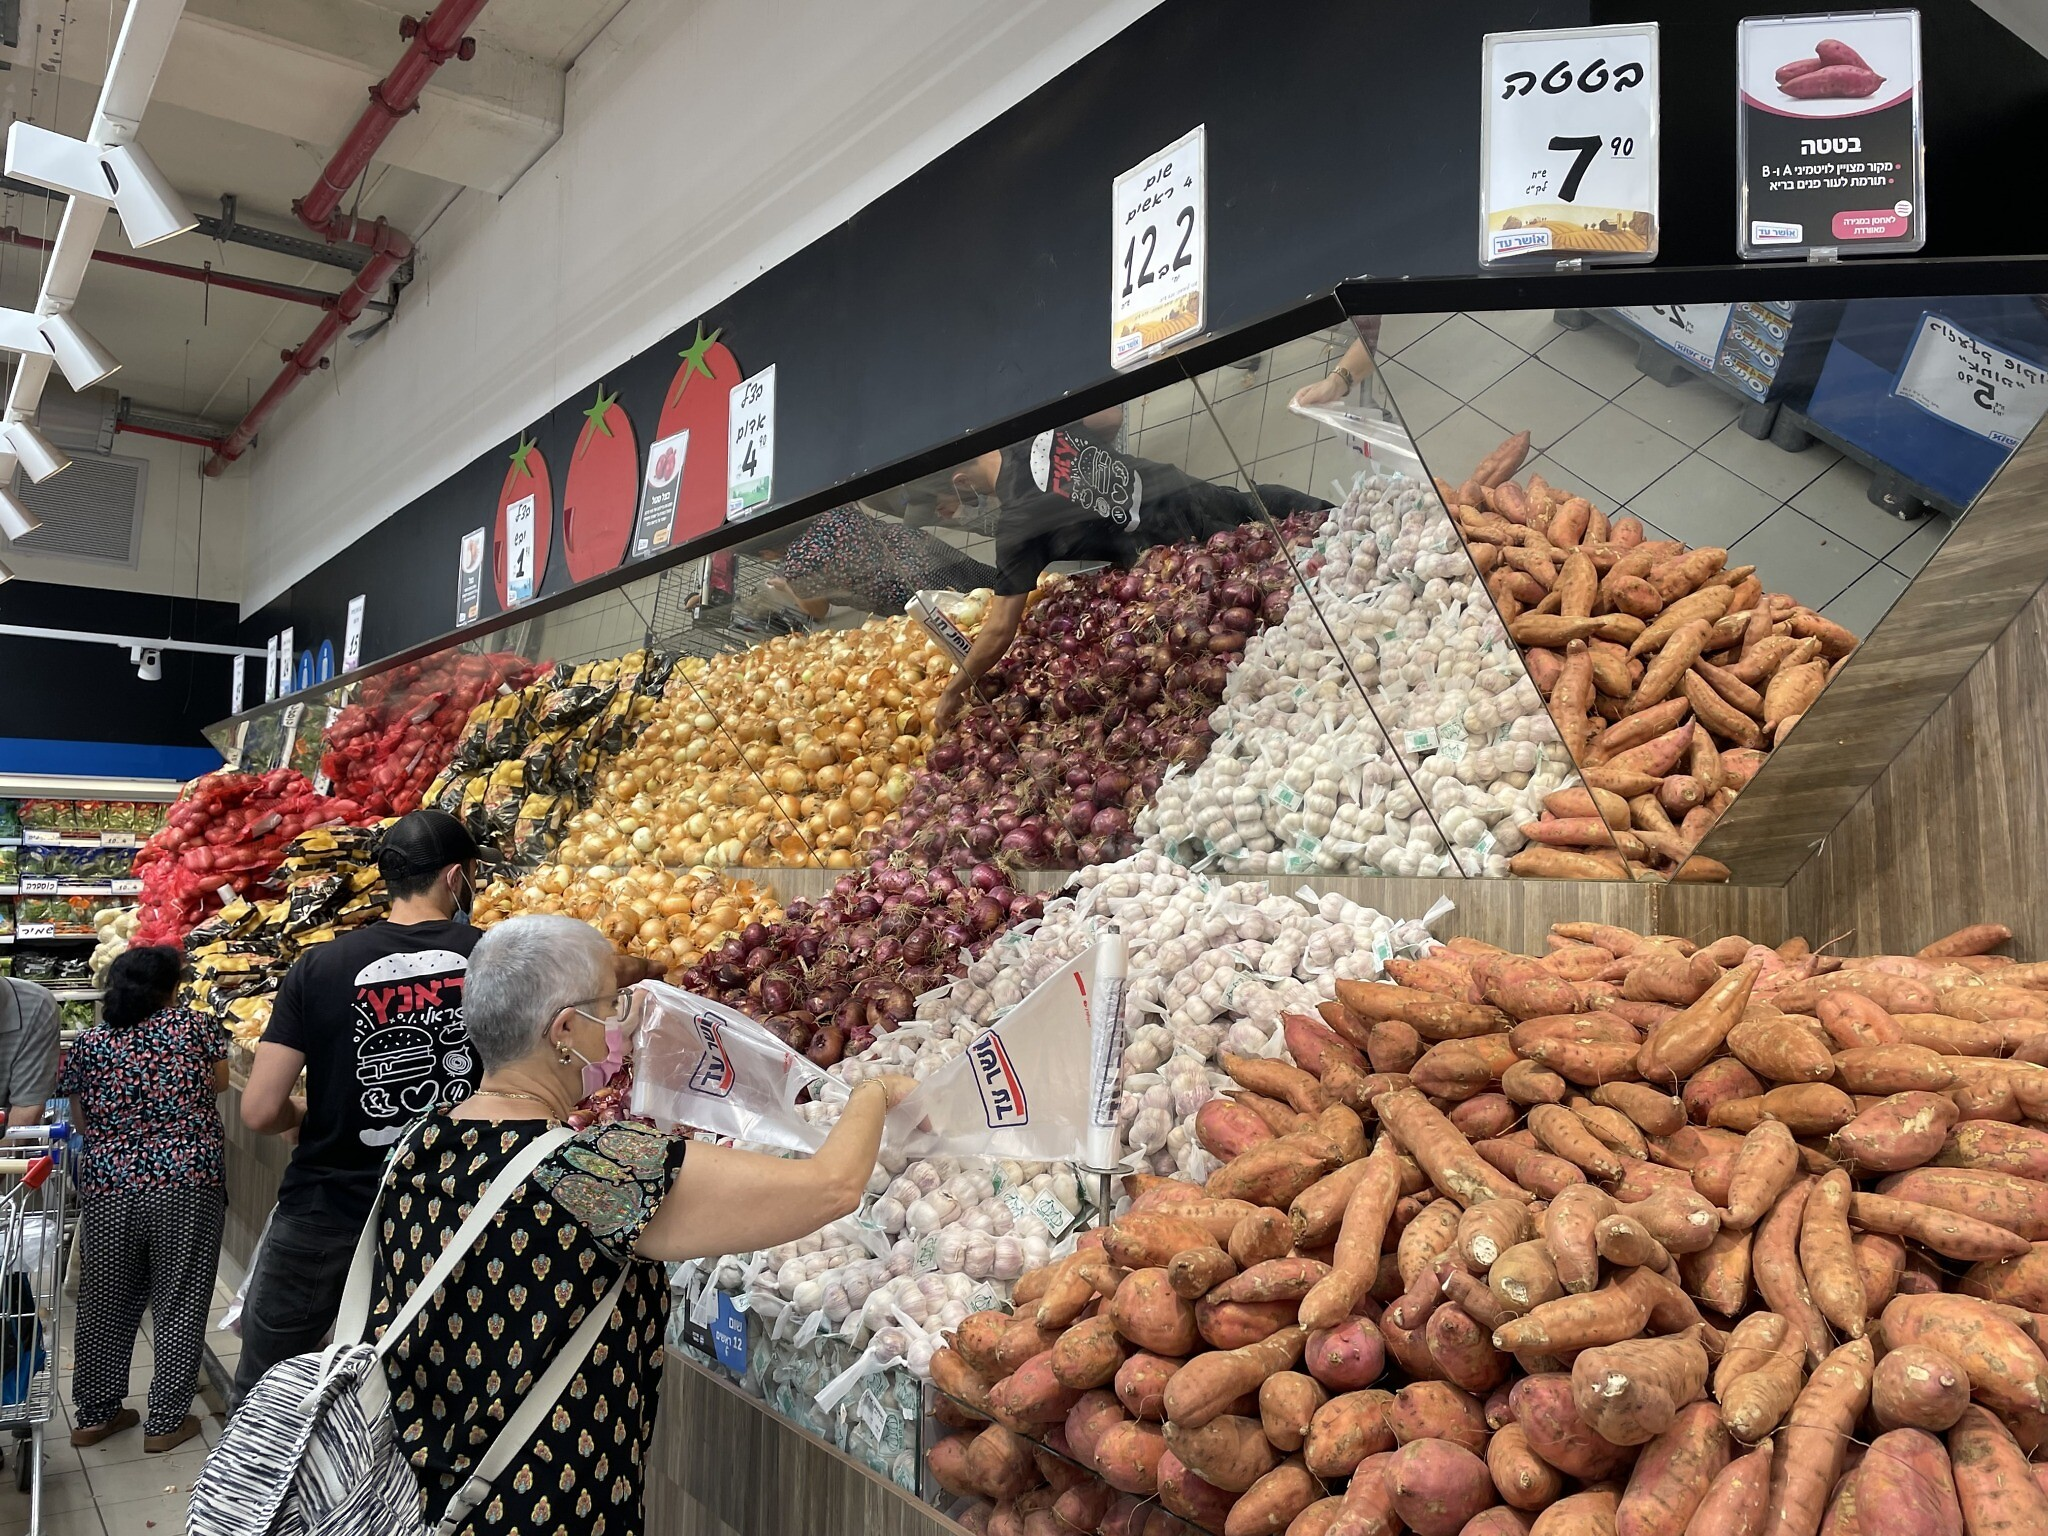 Buying vegetables at an Osher Ad store in Jerusalem, August 12 2021 (Sue Surkes/Times of Israel)